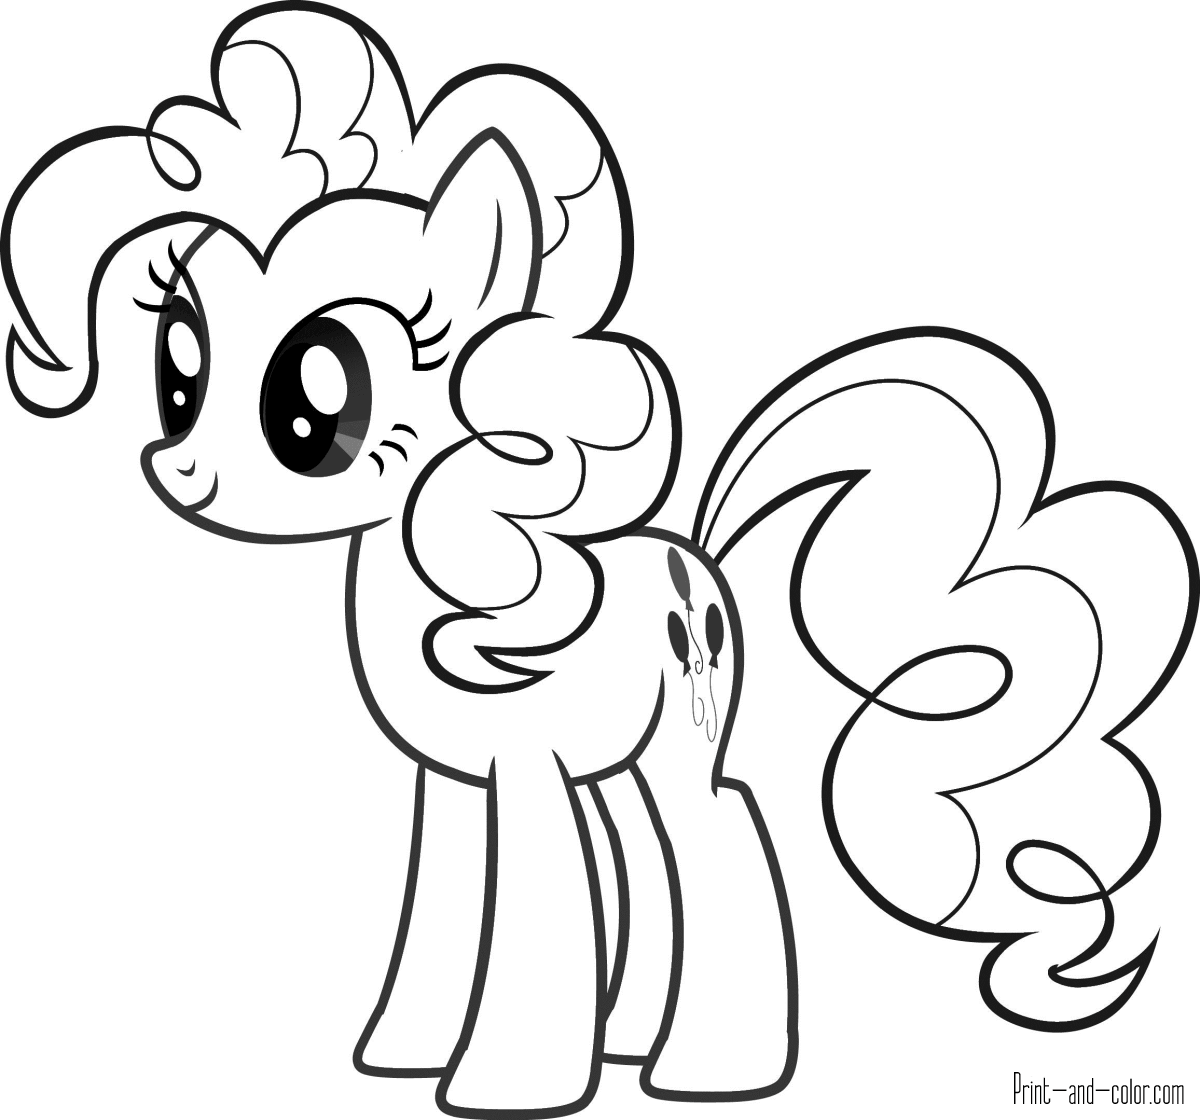 print my little pony my little pony coloring pages print and colorcom my pony print little